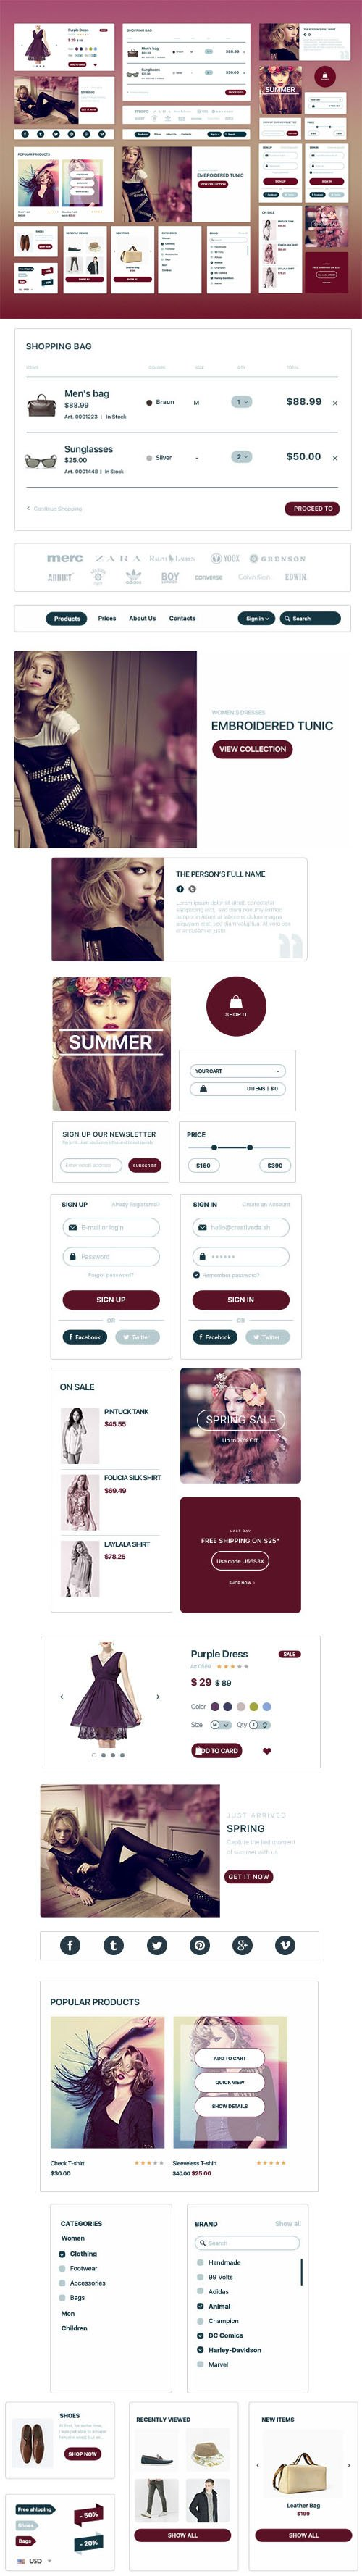 Elegant Fashion eCommerce UI Kit PSD Templates